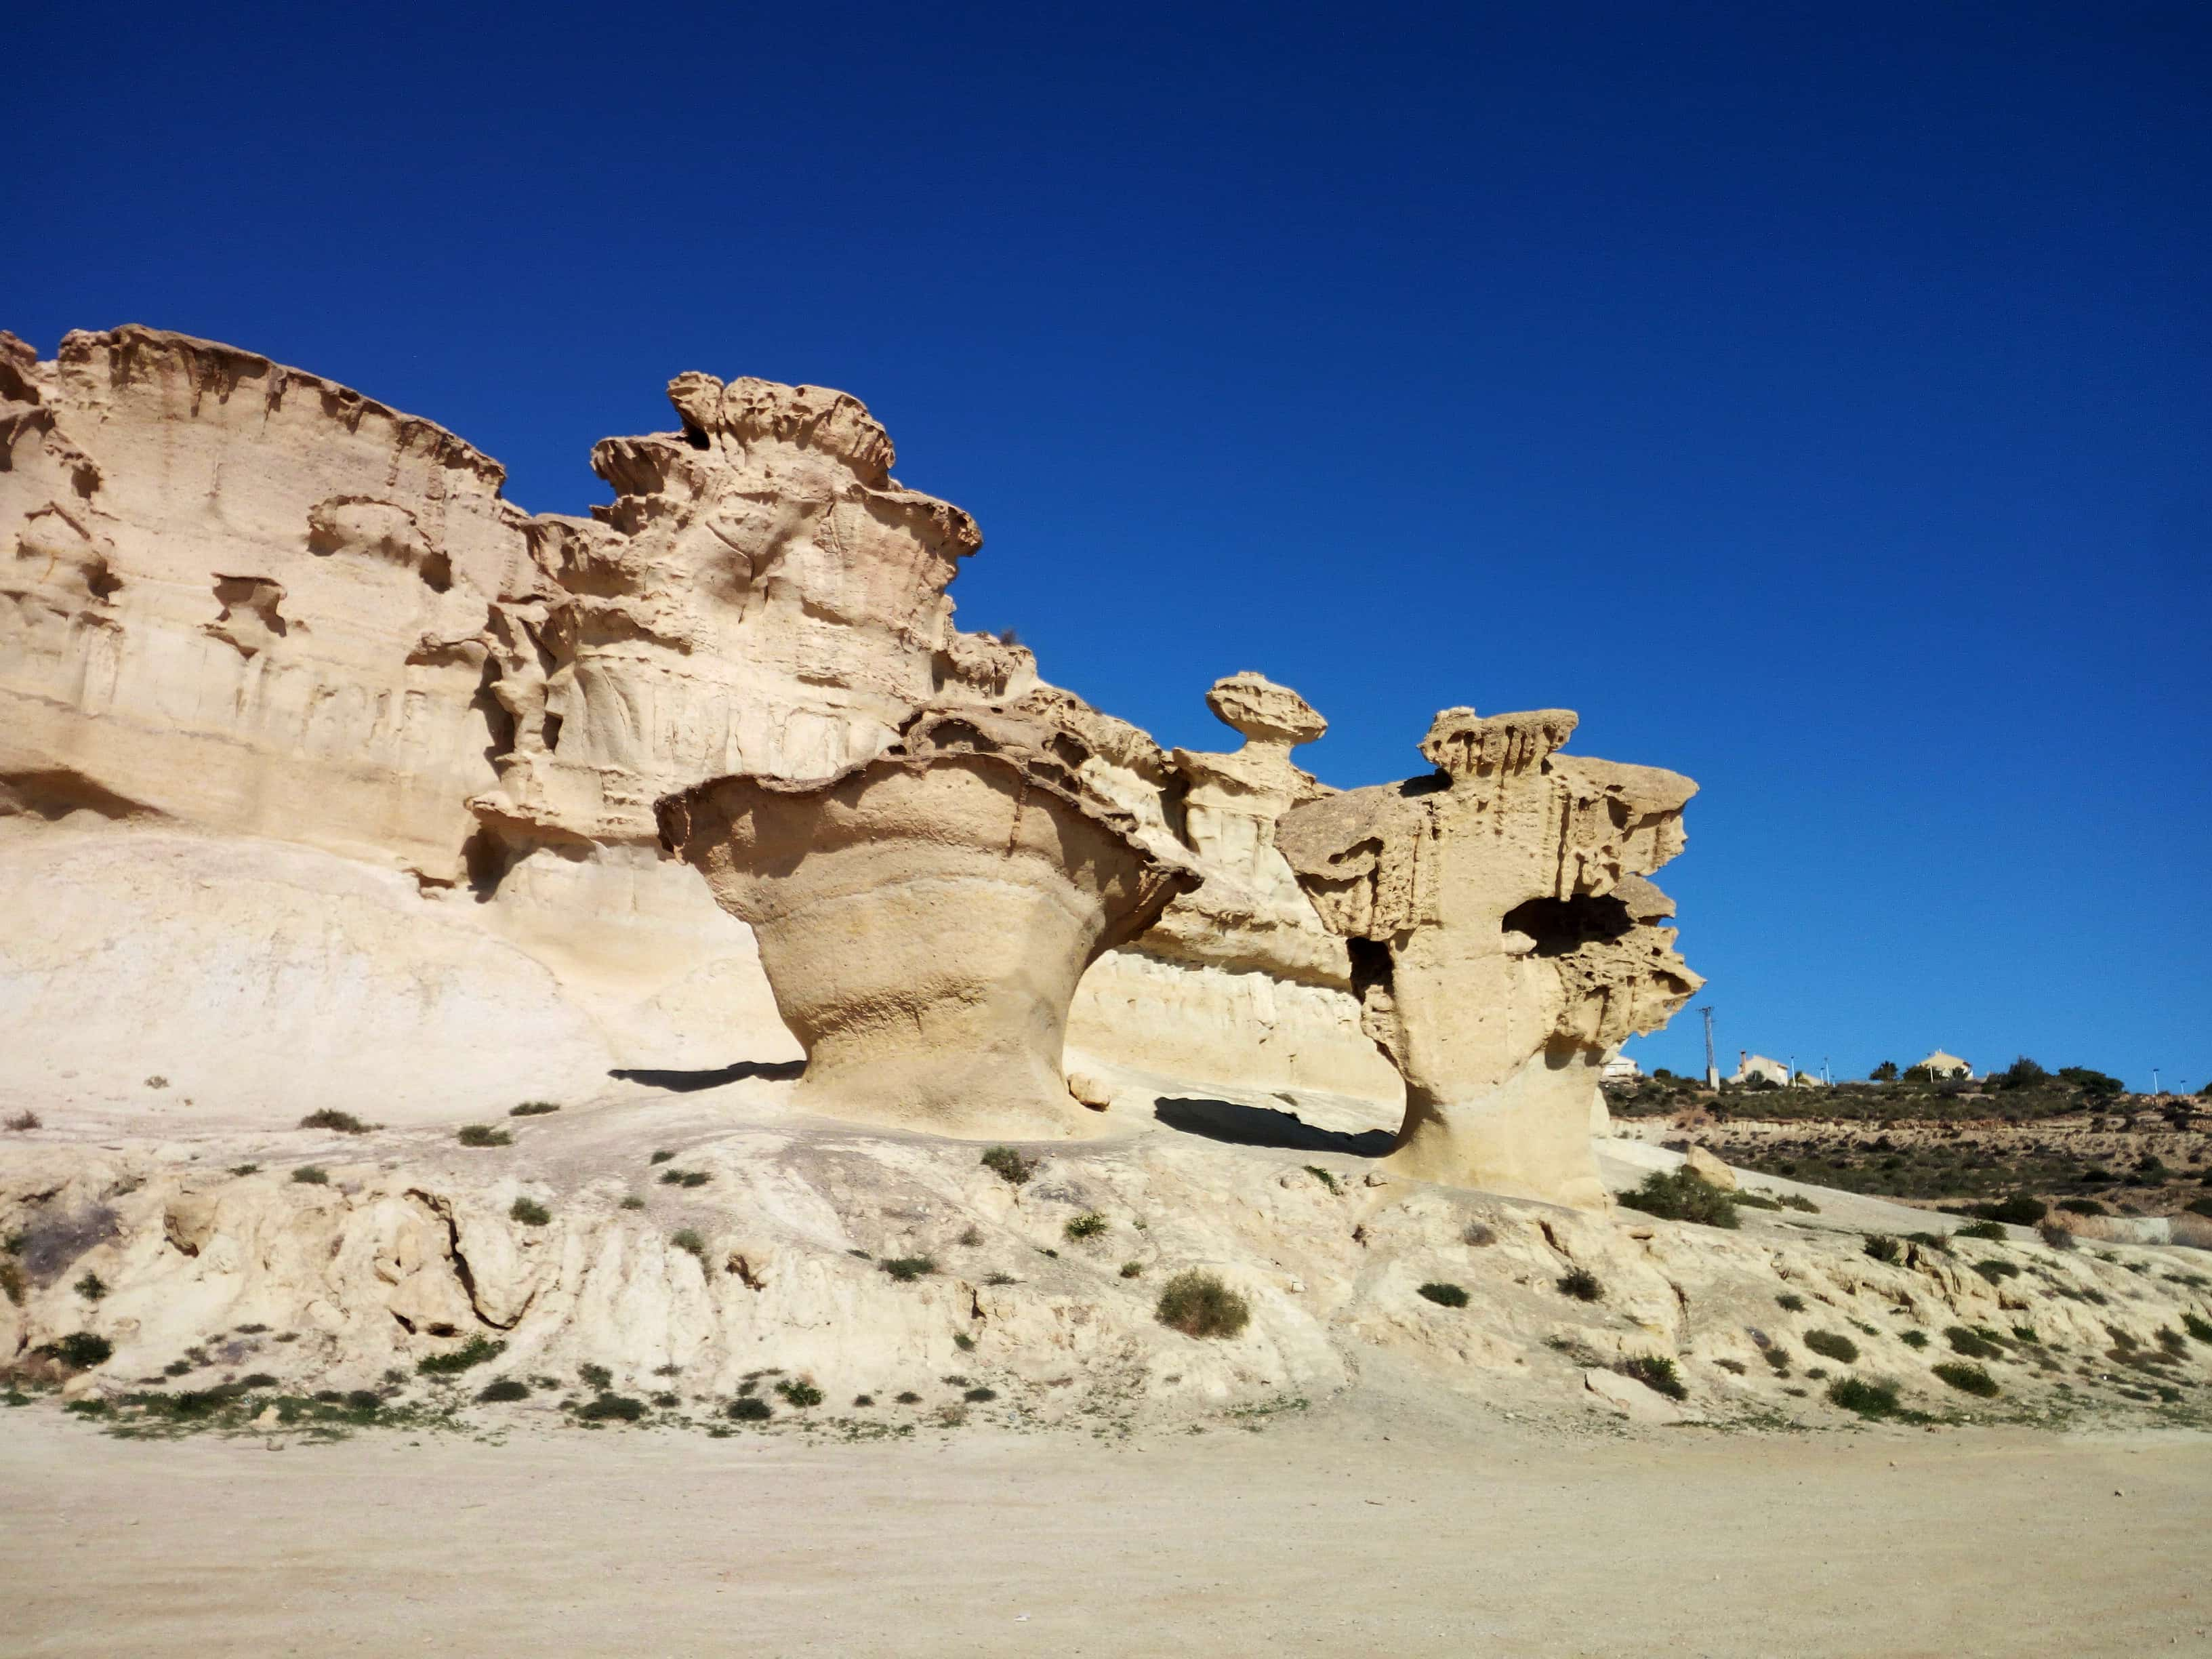 Bolnuevo erosions: a magical place